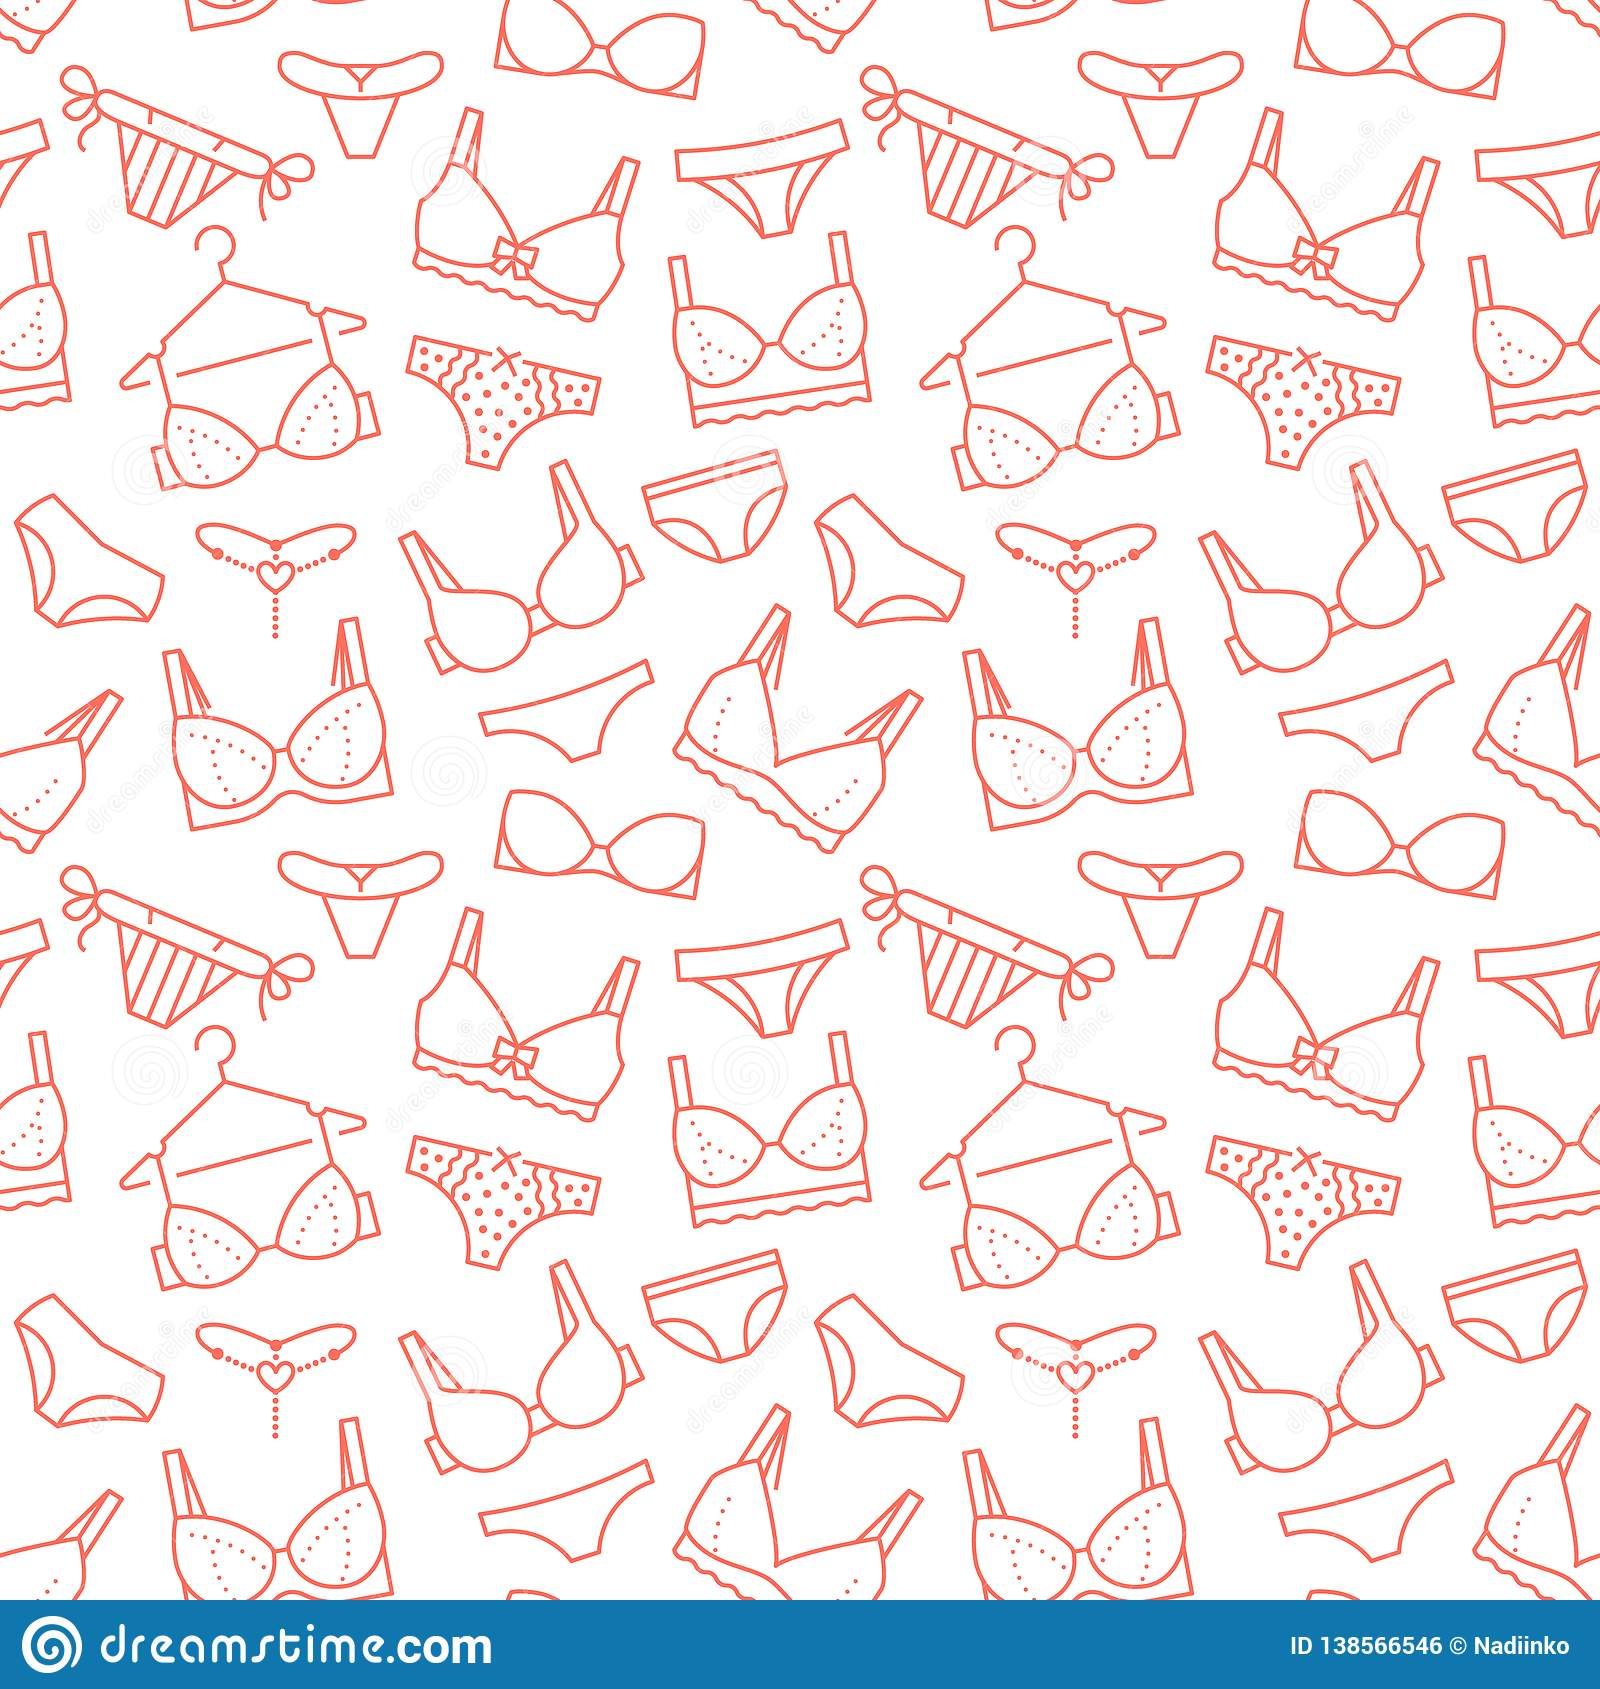 494468bb7ab2 Lingerie seamless pattern with flat line icons of bra types, panties. Woman  underwear background